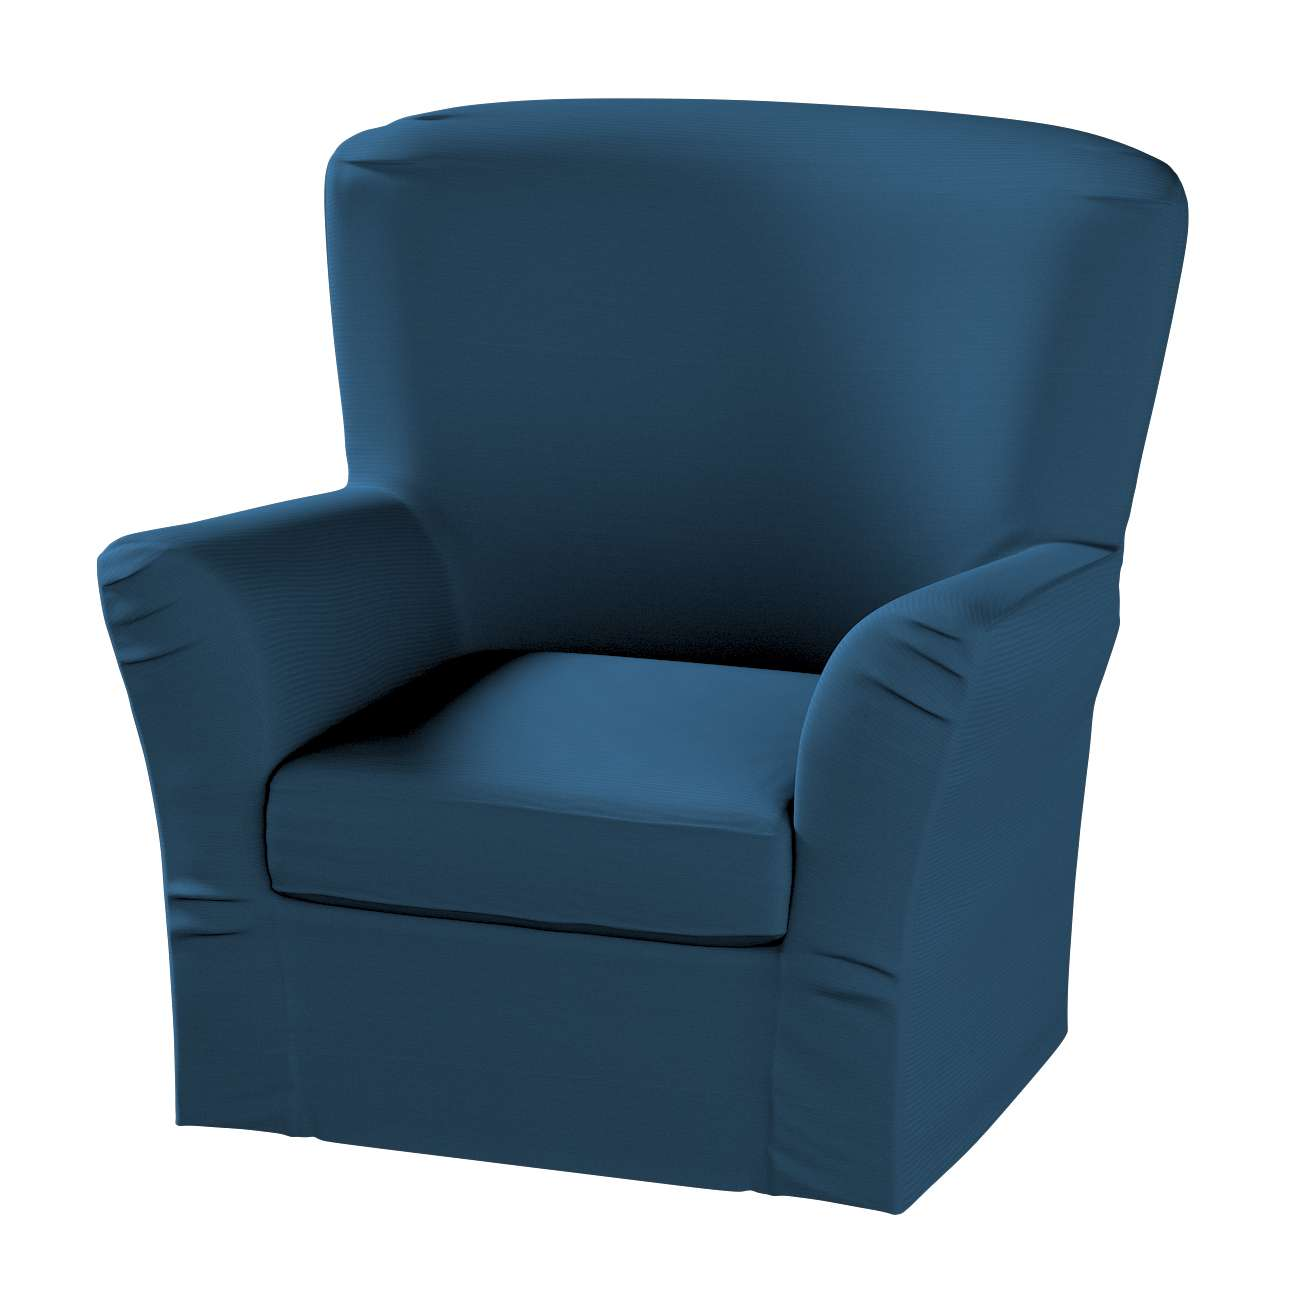 Tomelilla armchair  Tomelilla armchair in collection Panama Cotton, fabric: 702-30